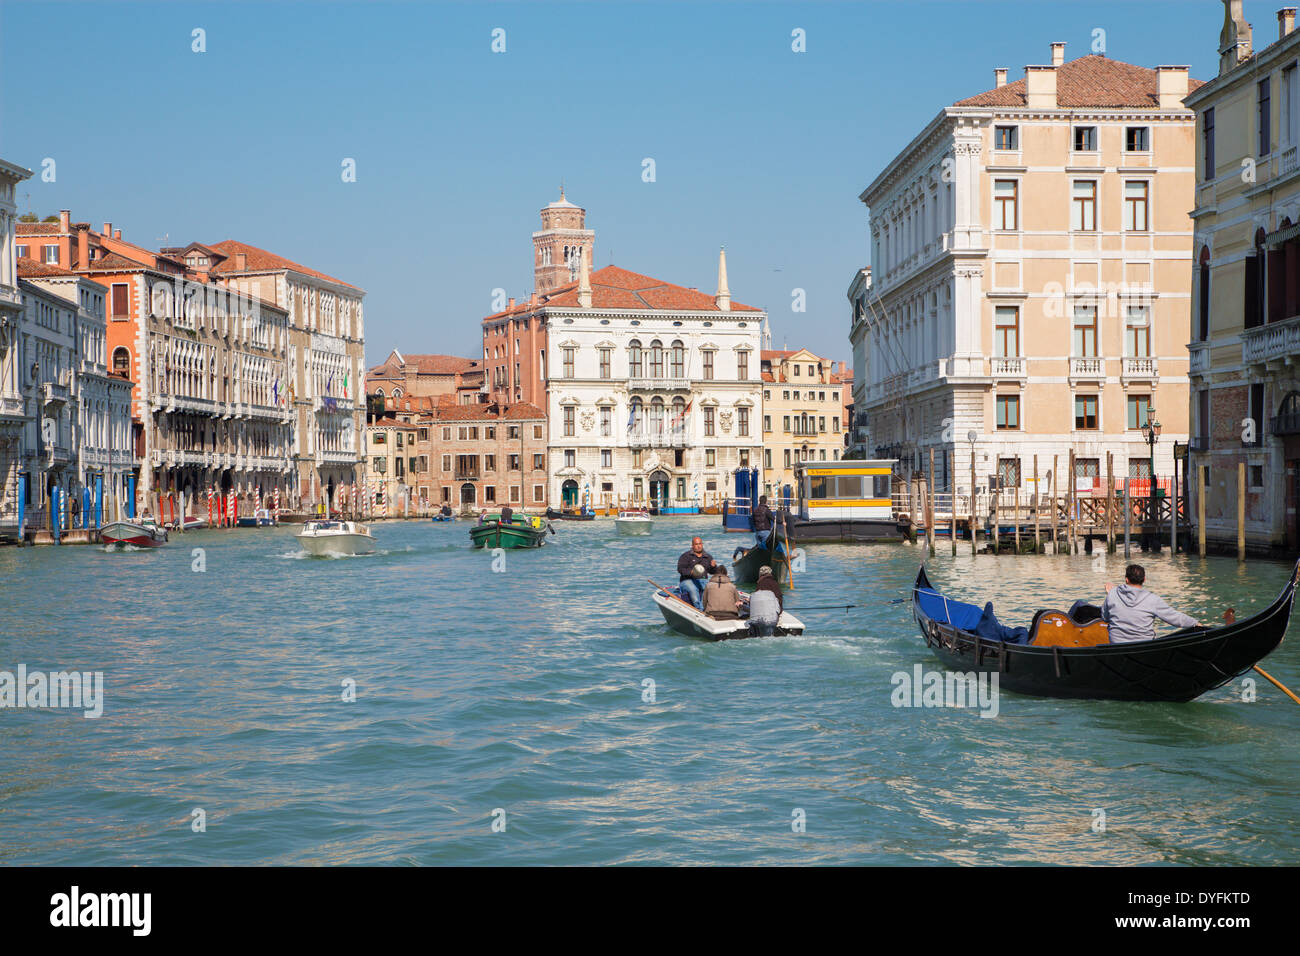 VENICE, ITALY - MARCH 13, 2014: Canal Grande. - Stock Image